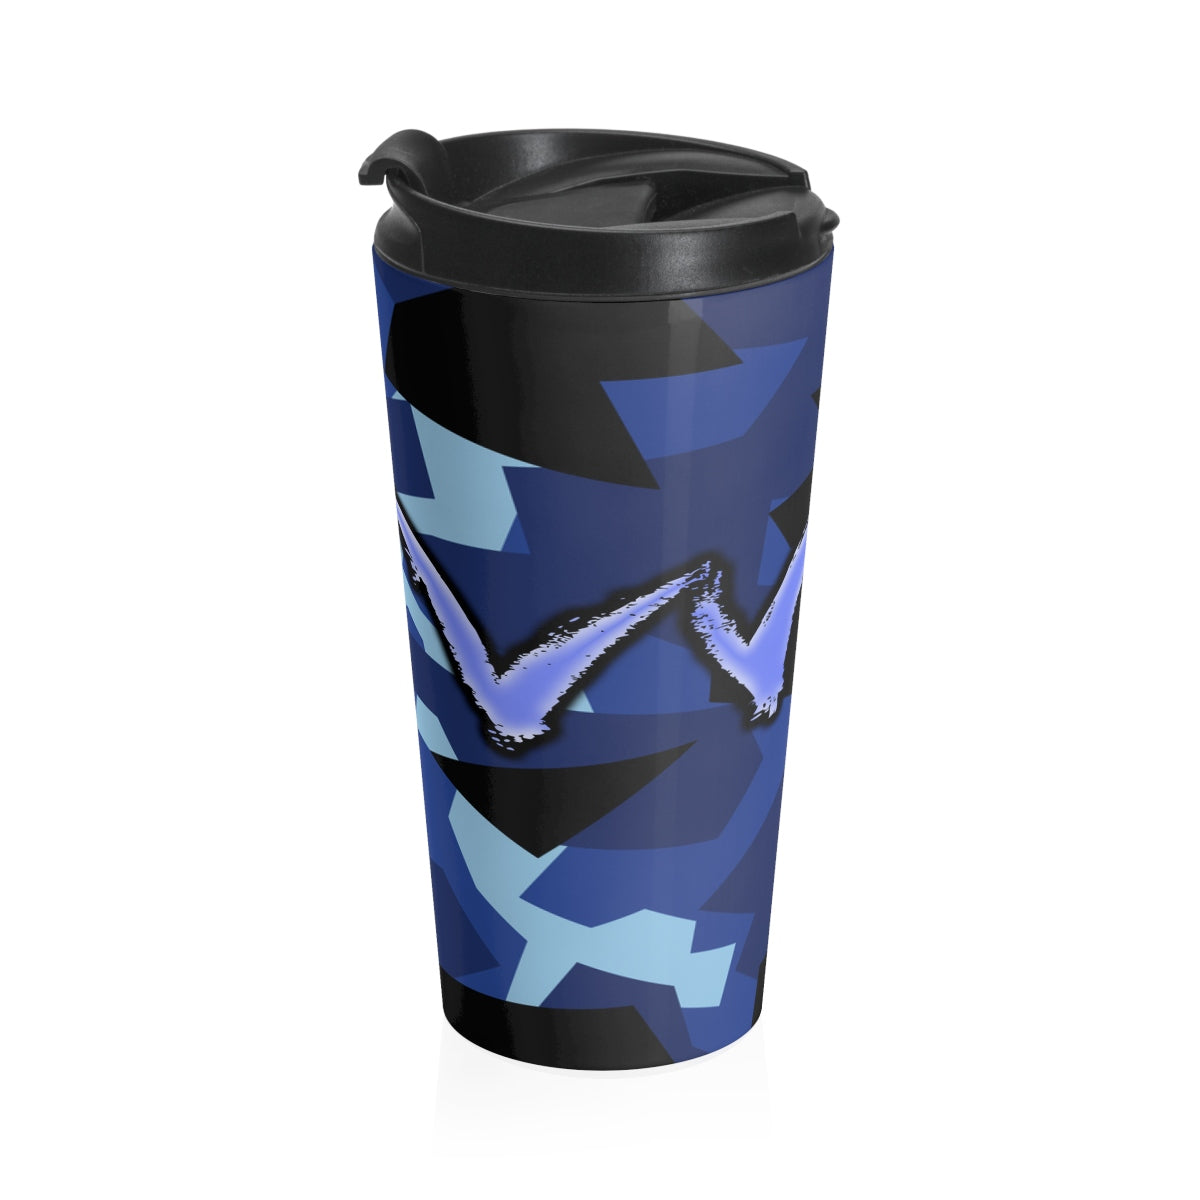 ICE 2 /Stainless Steel Travel Mug